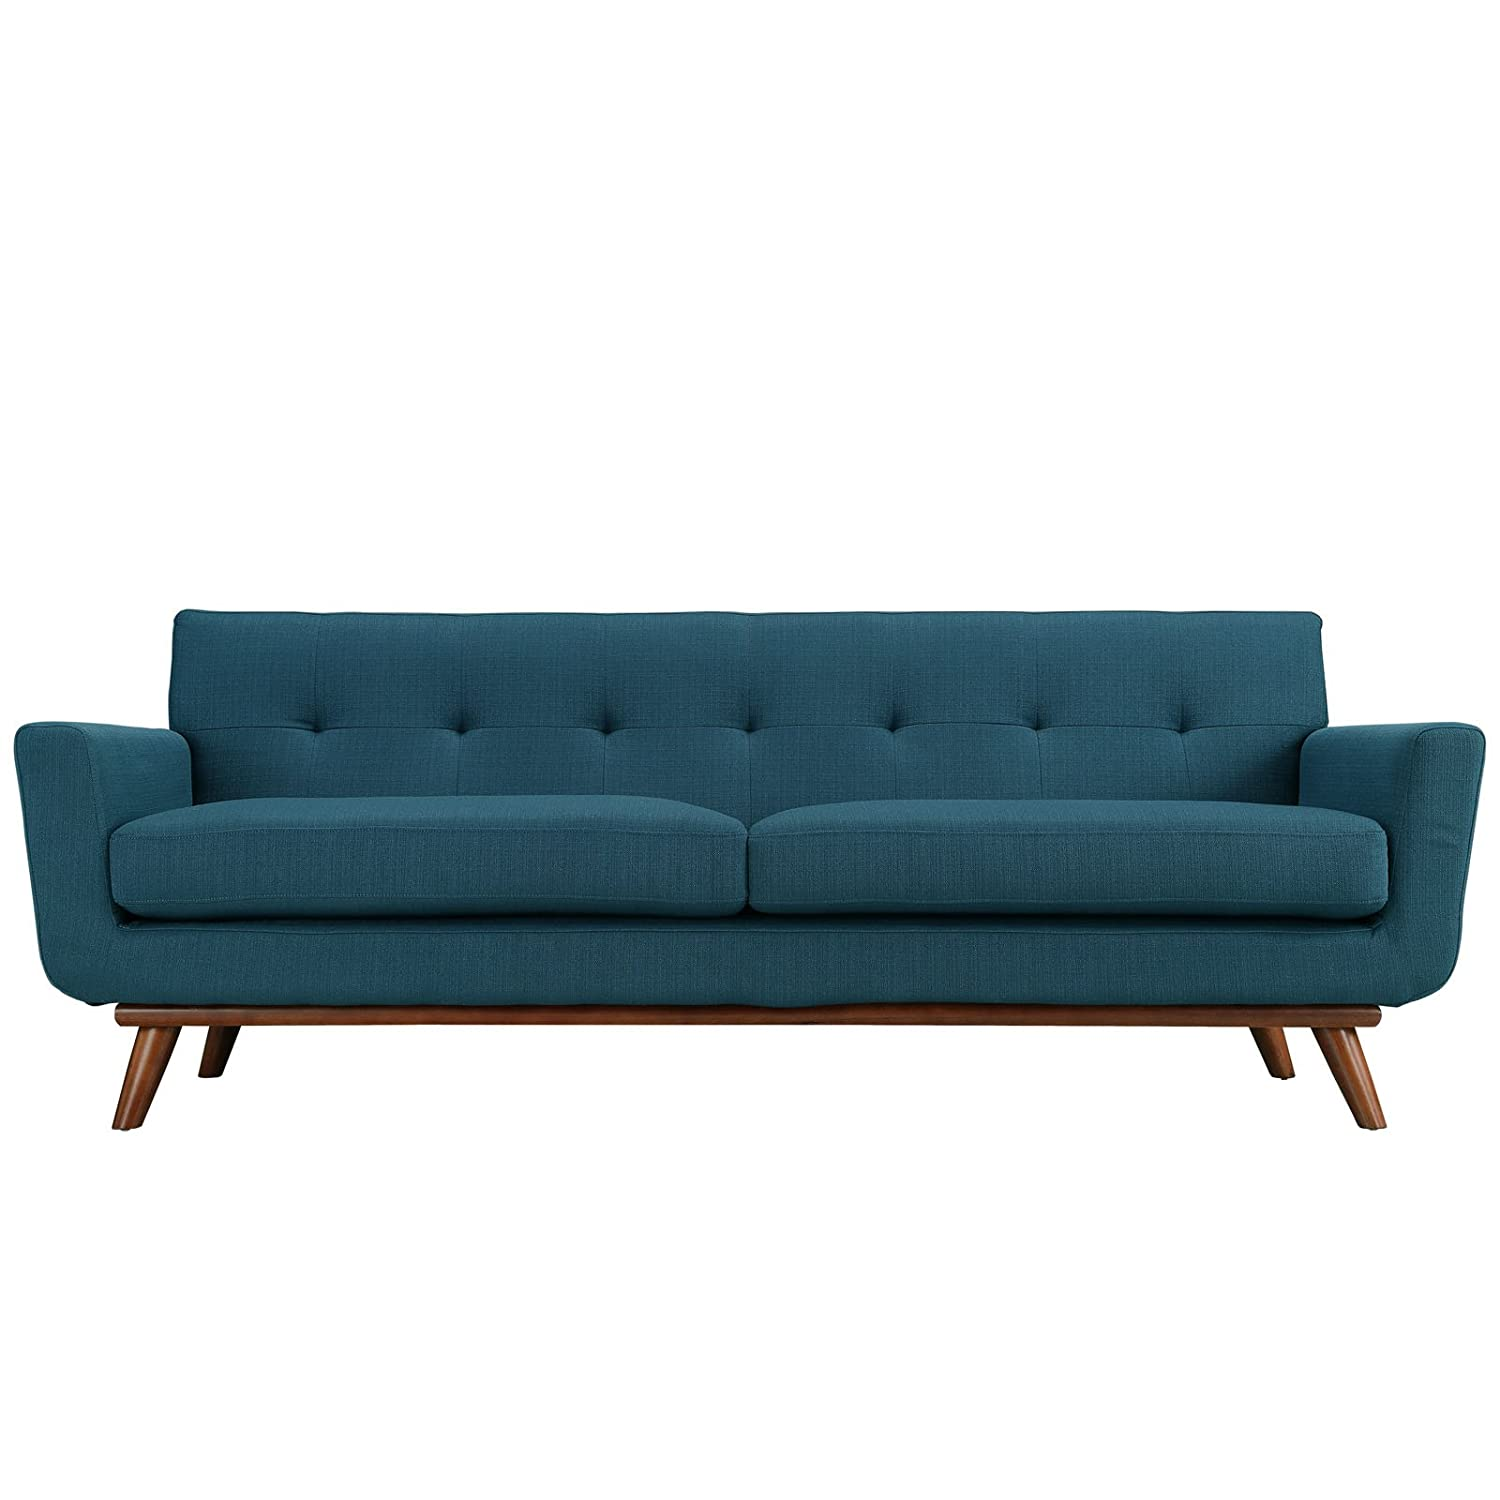 Amazon com modway engage mid century modern upholstered fabric sofa in azure kitchen dining